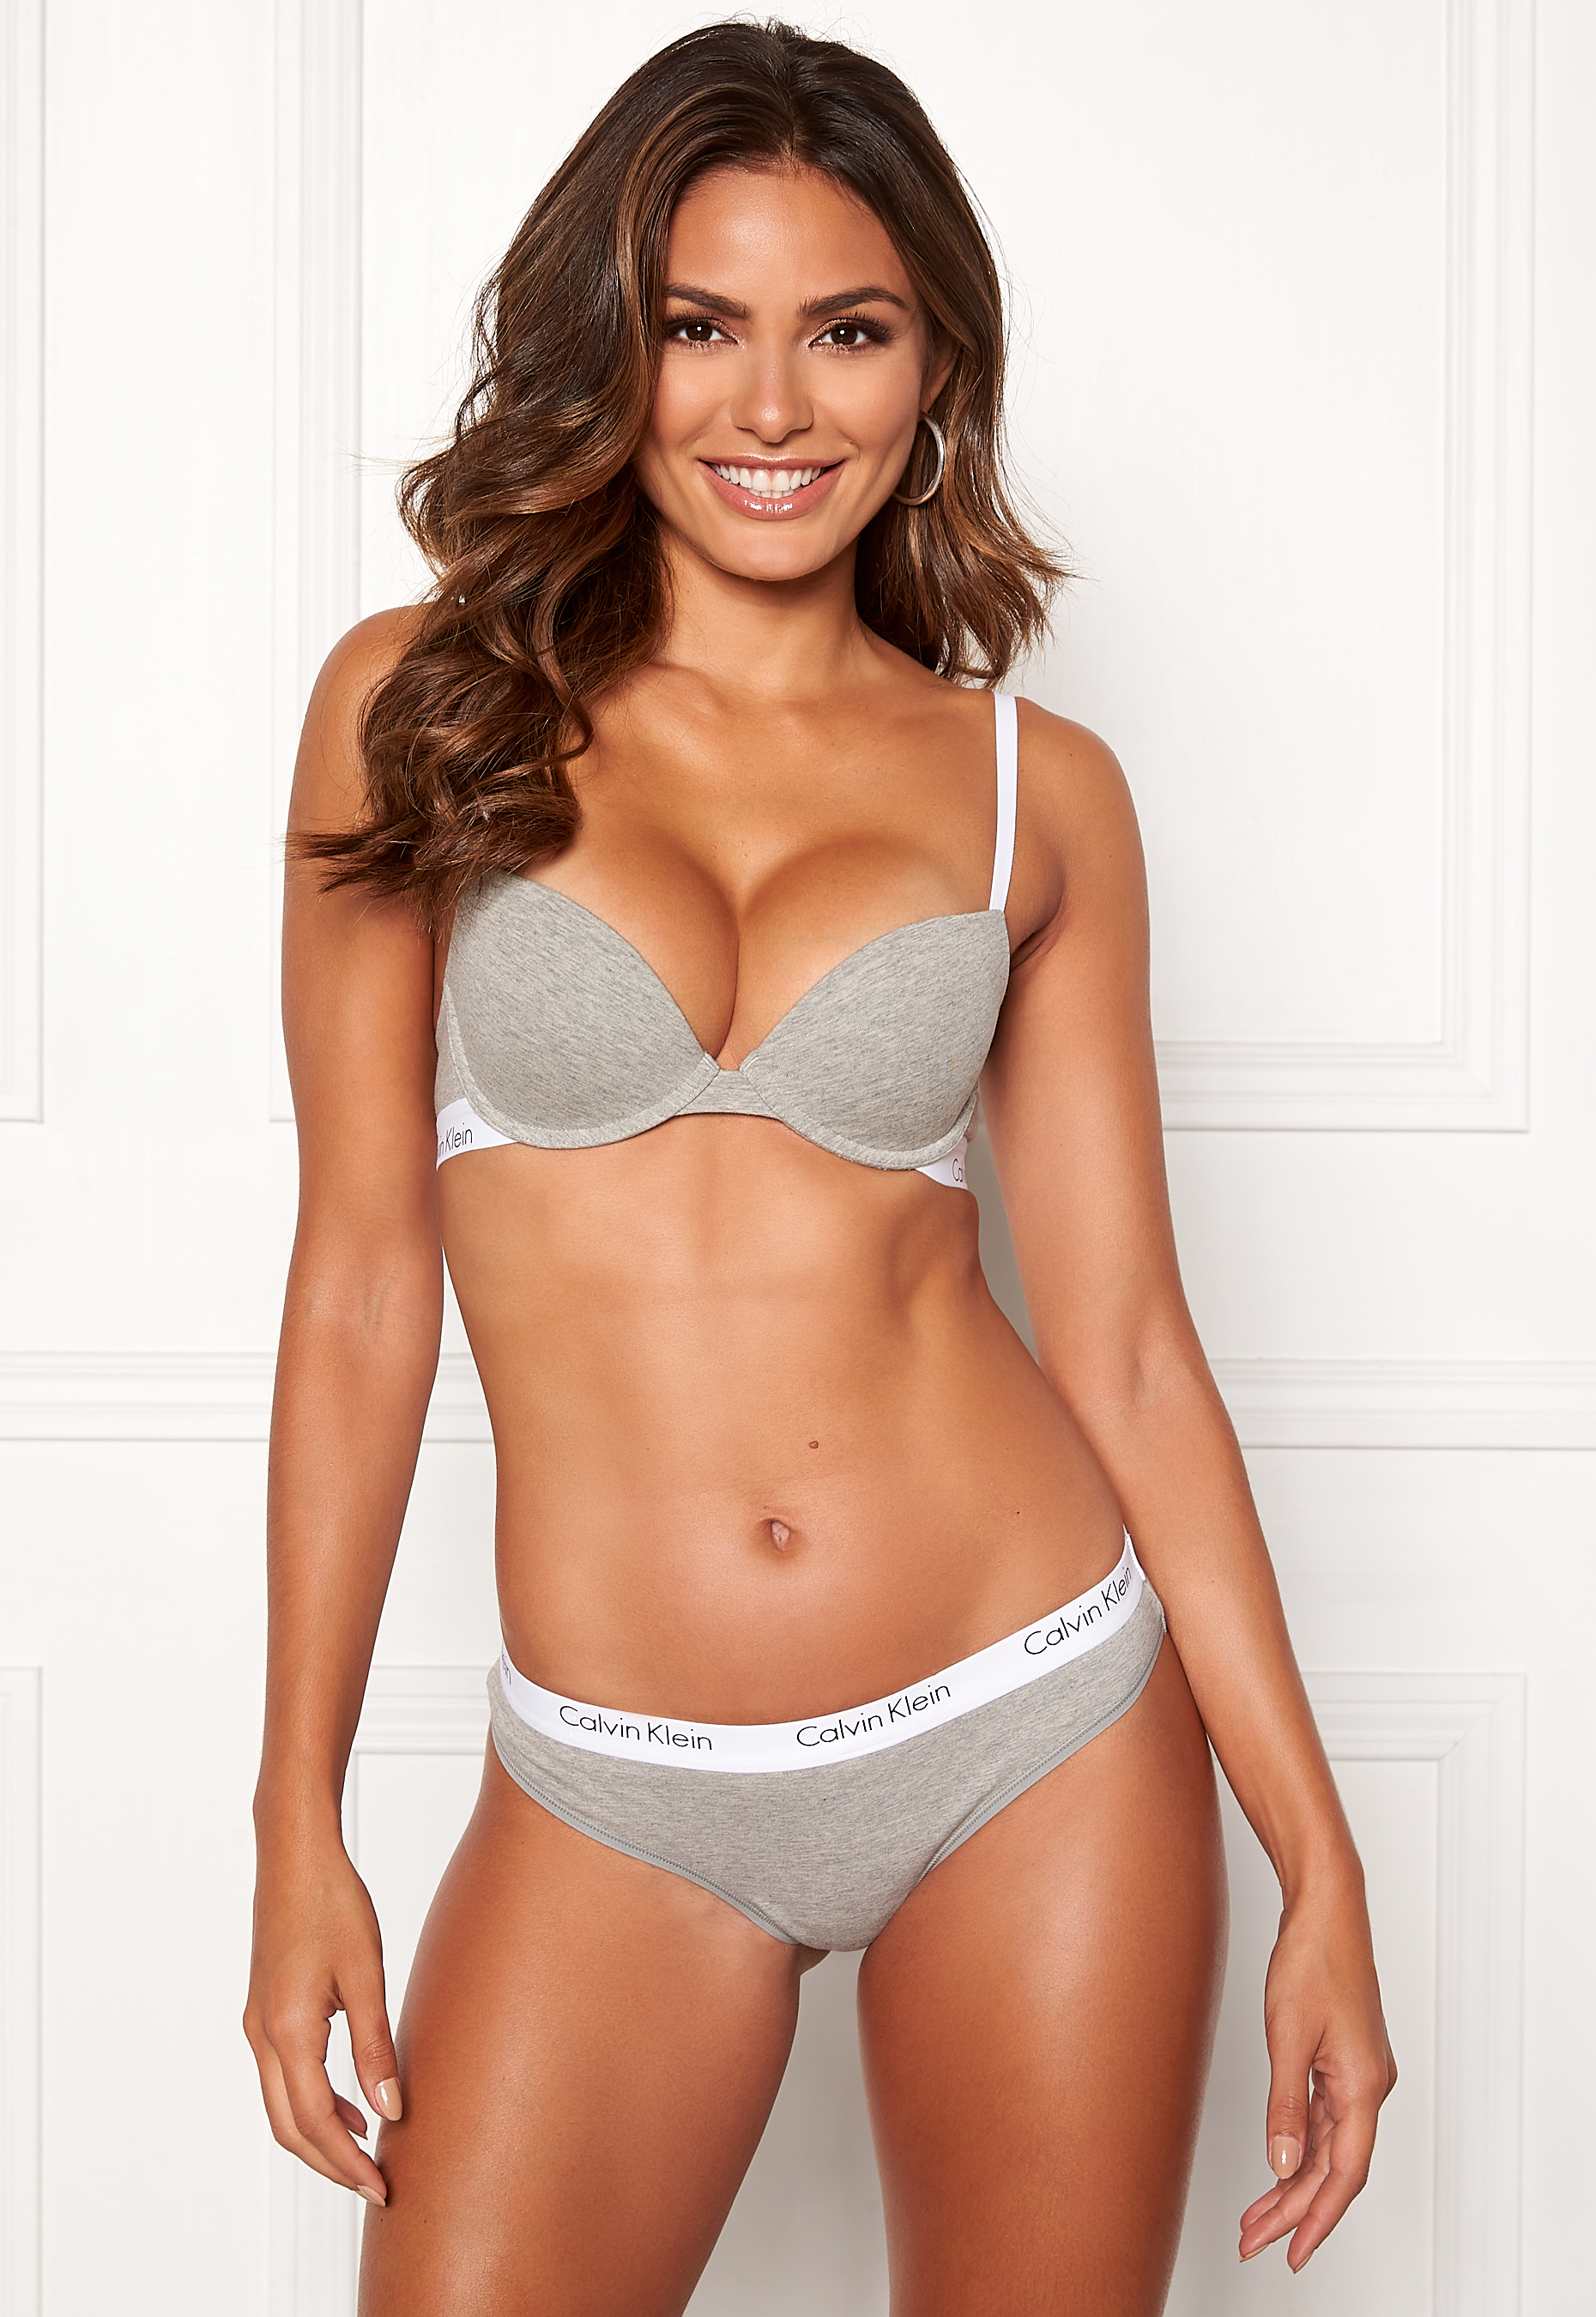 b2483952a0 Calvin Klein CK One Cotton T-shirt Bra Grey Heather - Bubbleroom